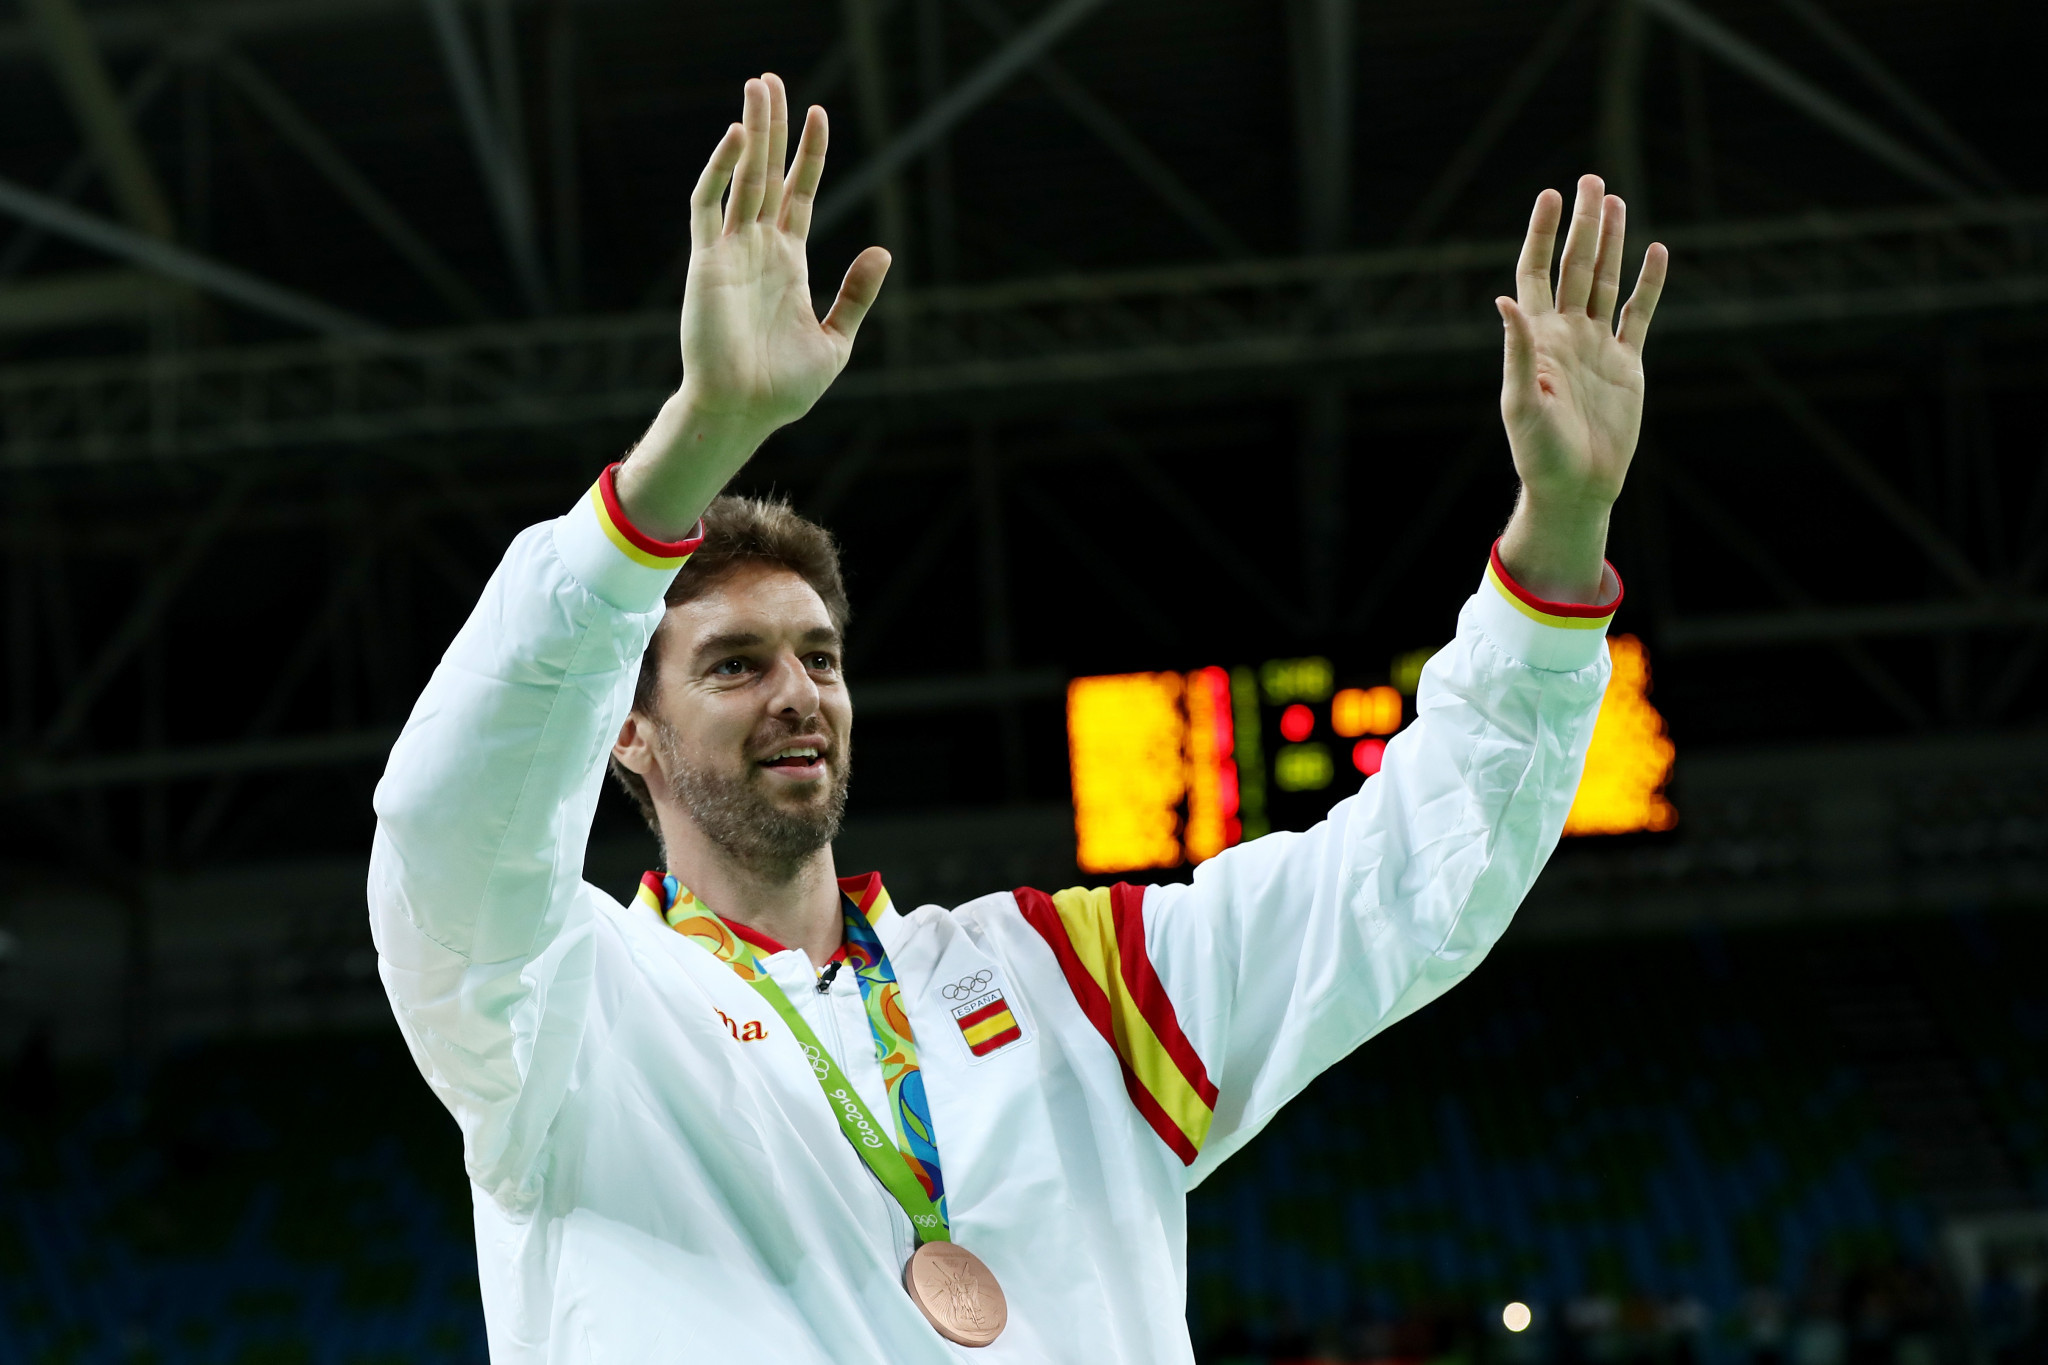 Pau Gasol has won three Olympic medals during his career ©Getty Images